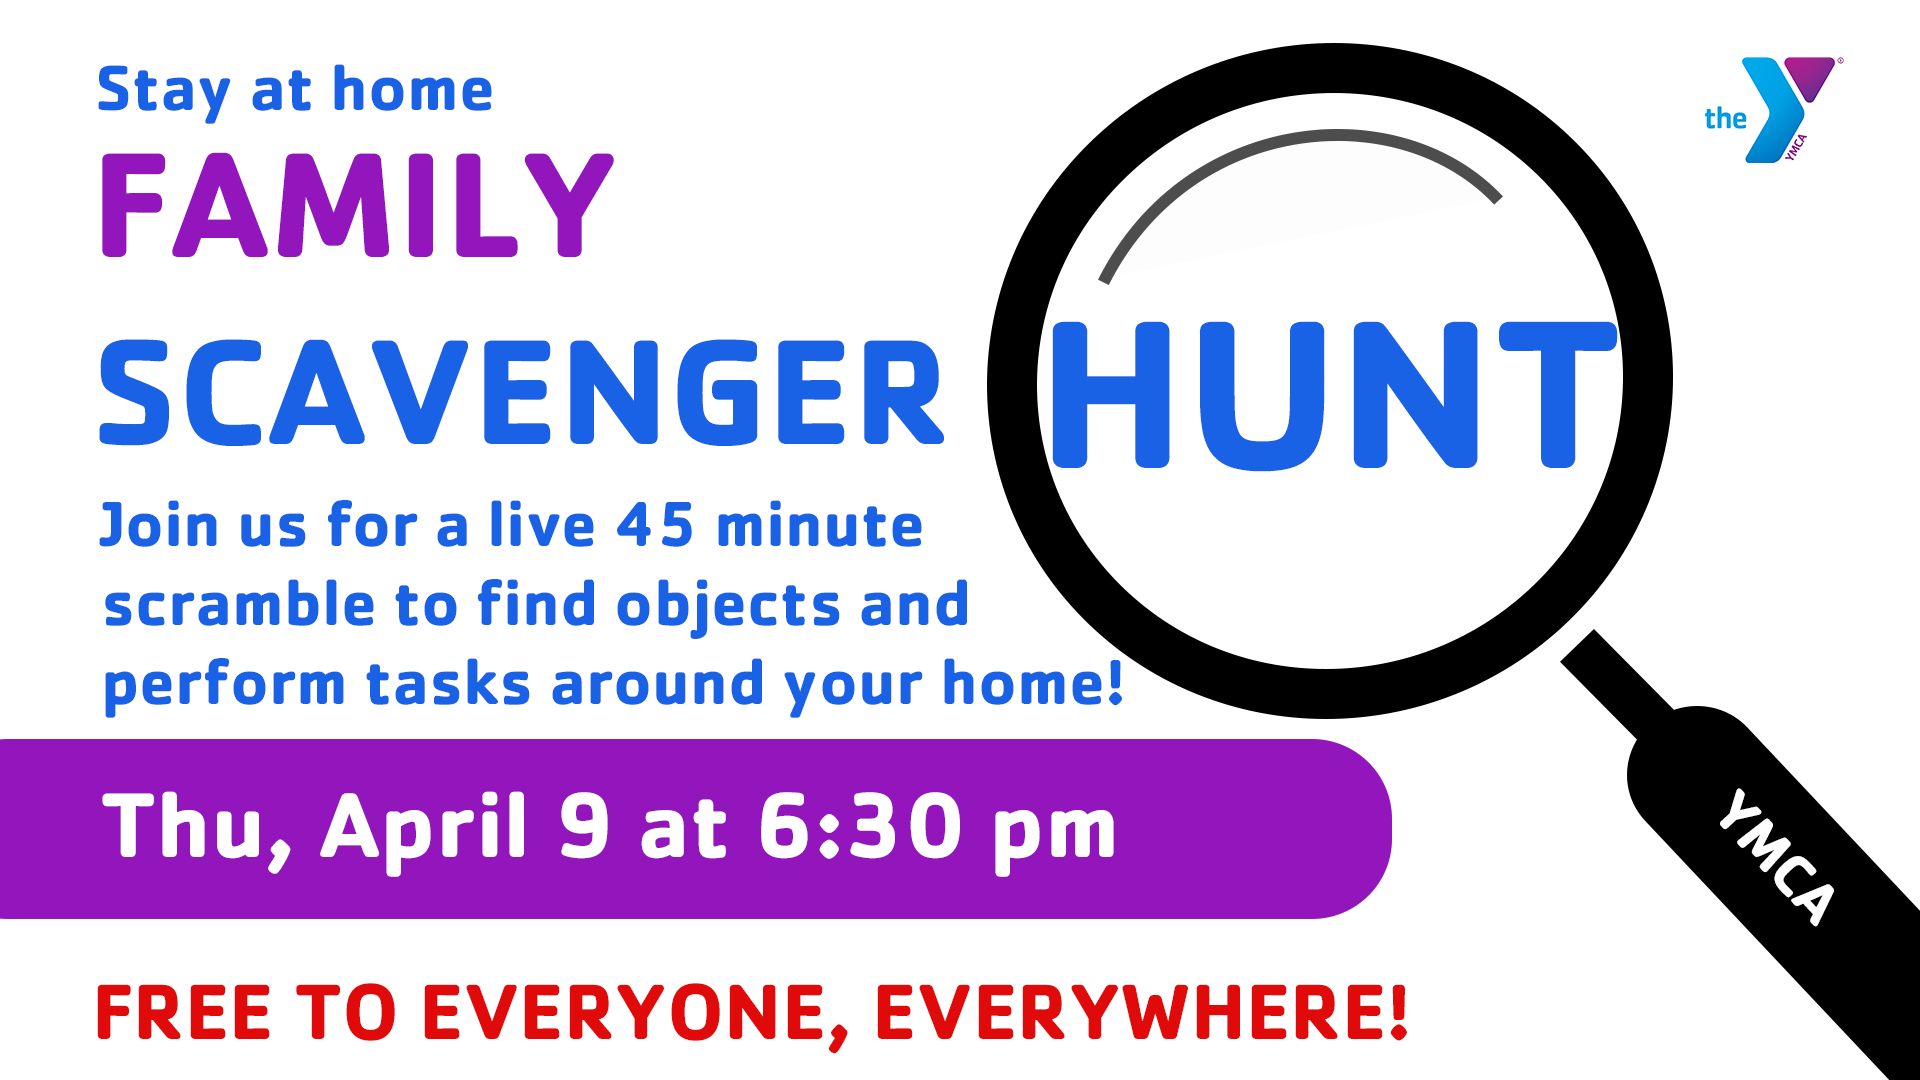 Stay at Home Scavenger Hunt